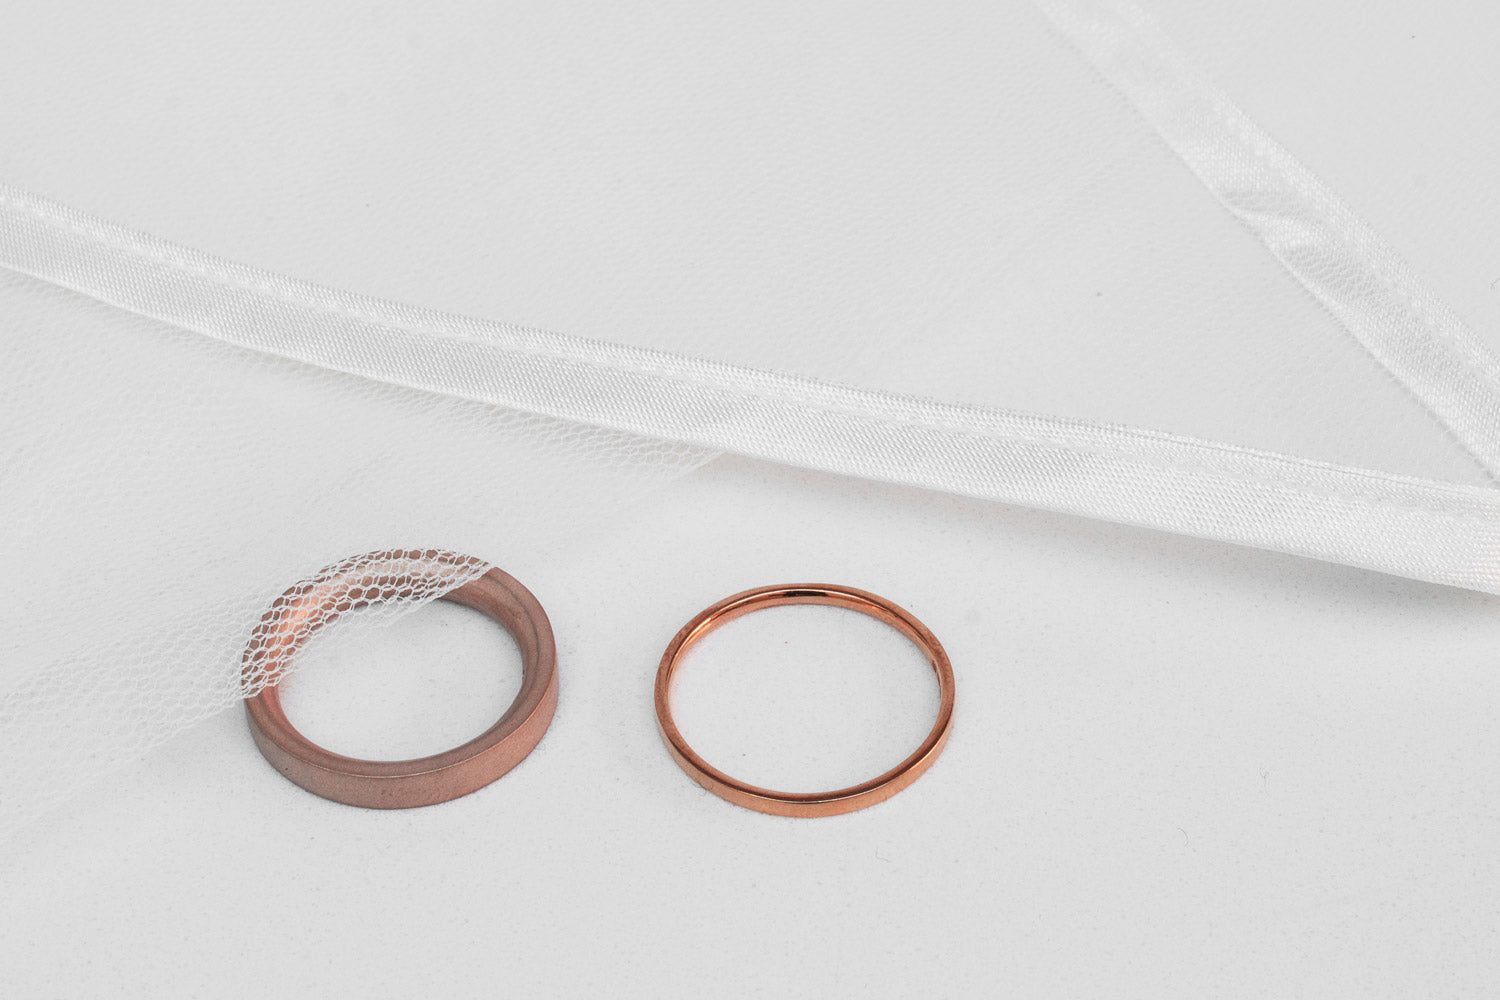 rose gold wedding rings | Alice Made This